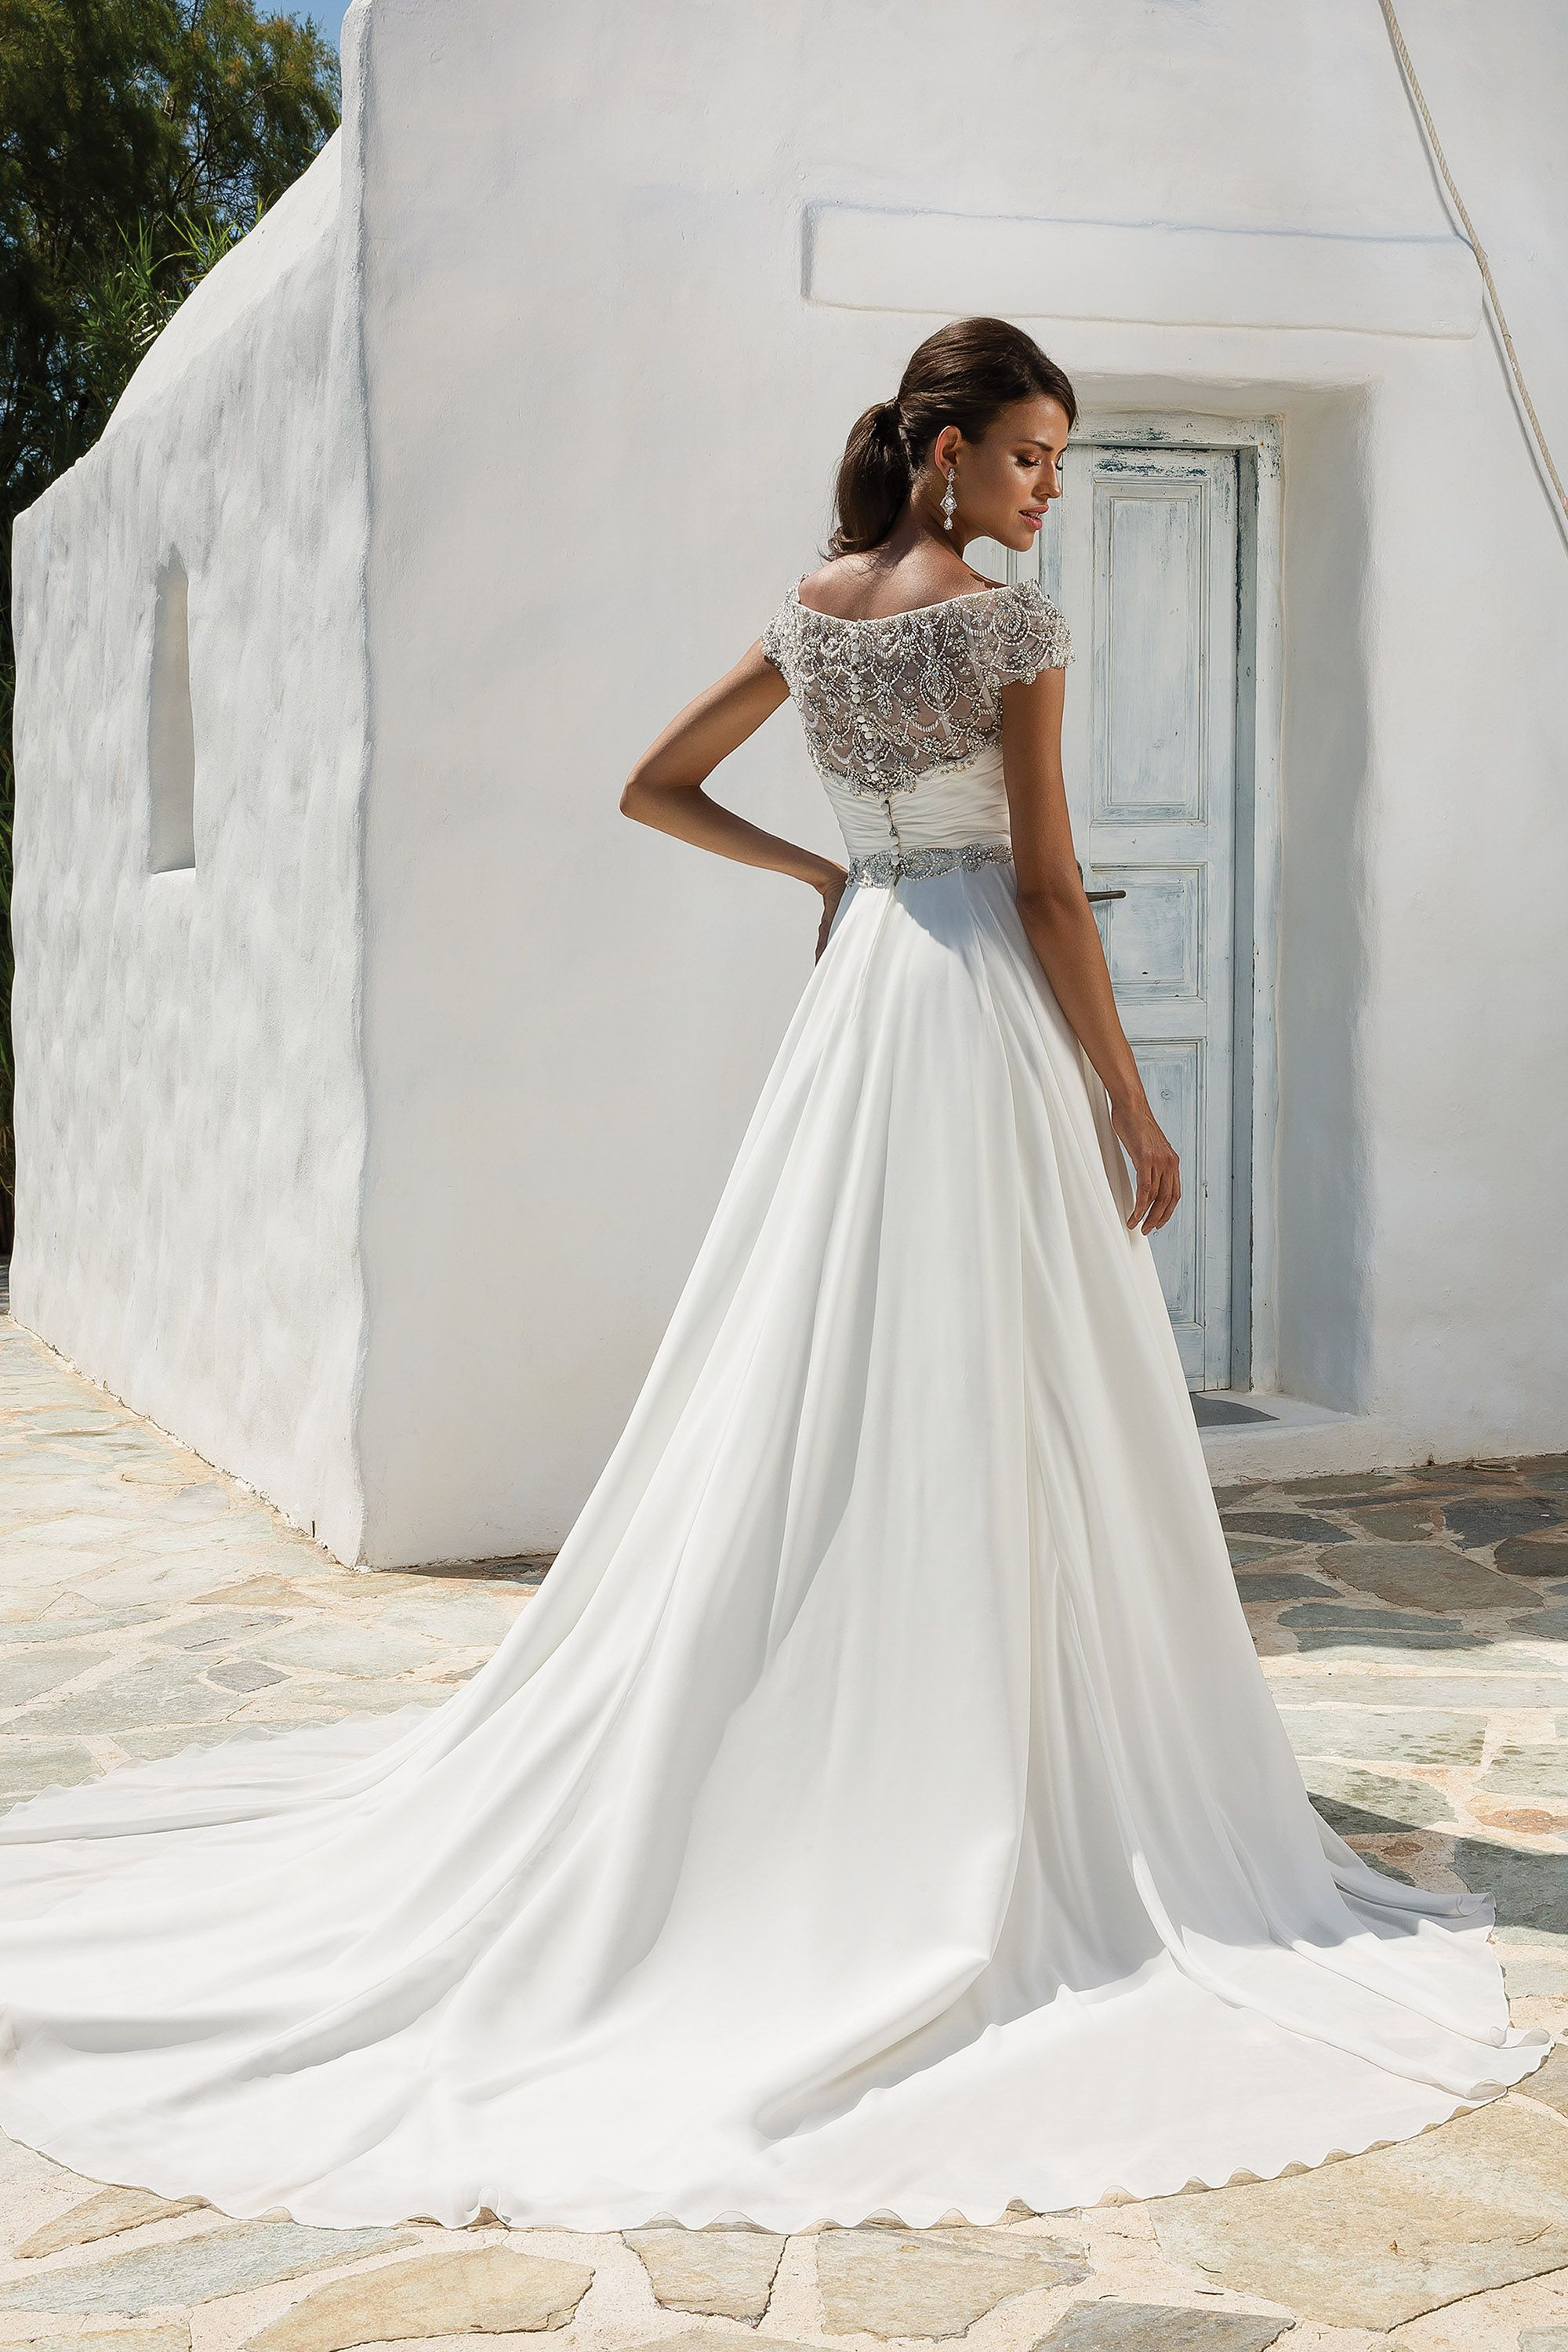 Gorgeous chiffon ball gown with beaded embroidery and portrait